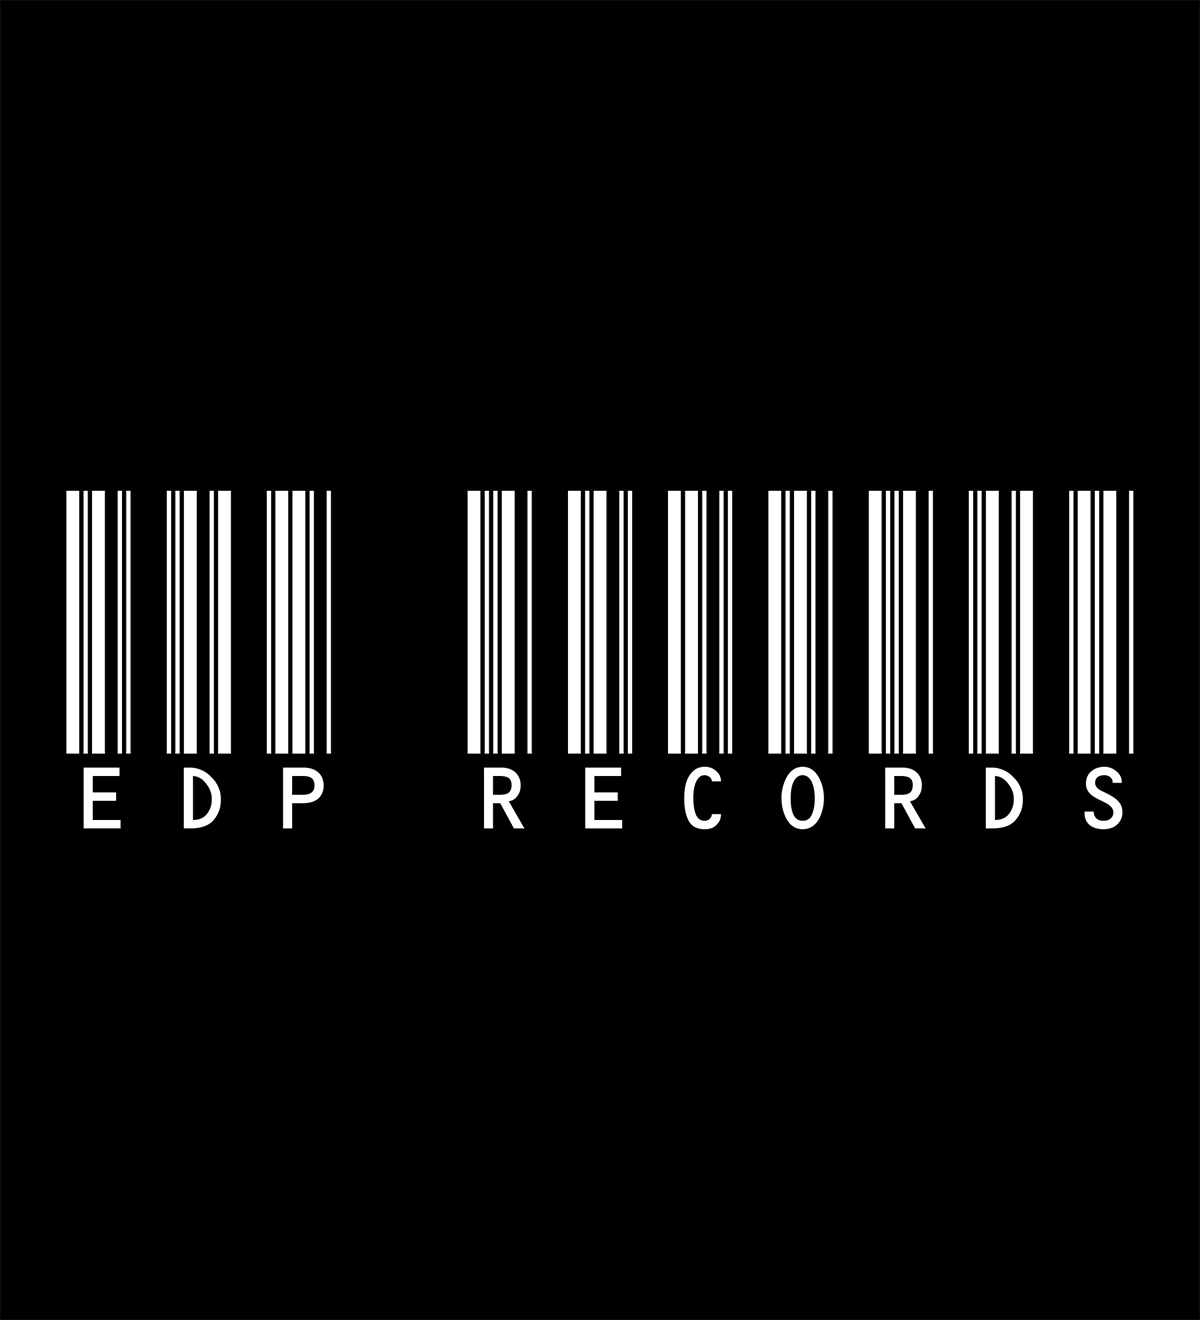 EDP Records Barcode White